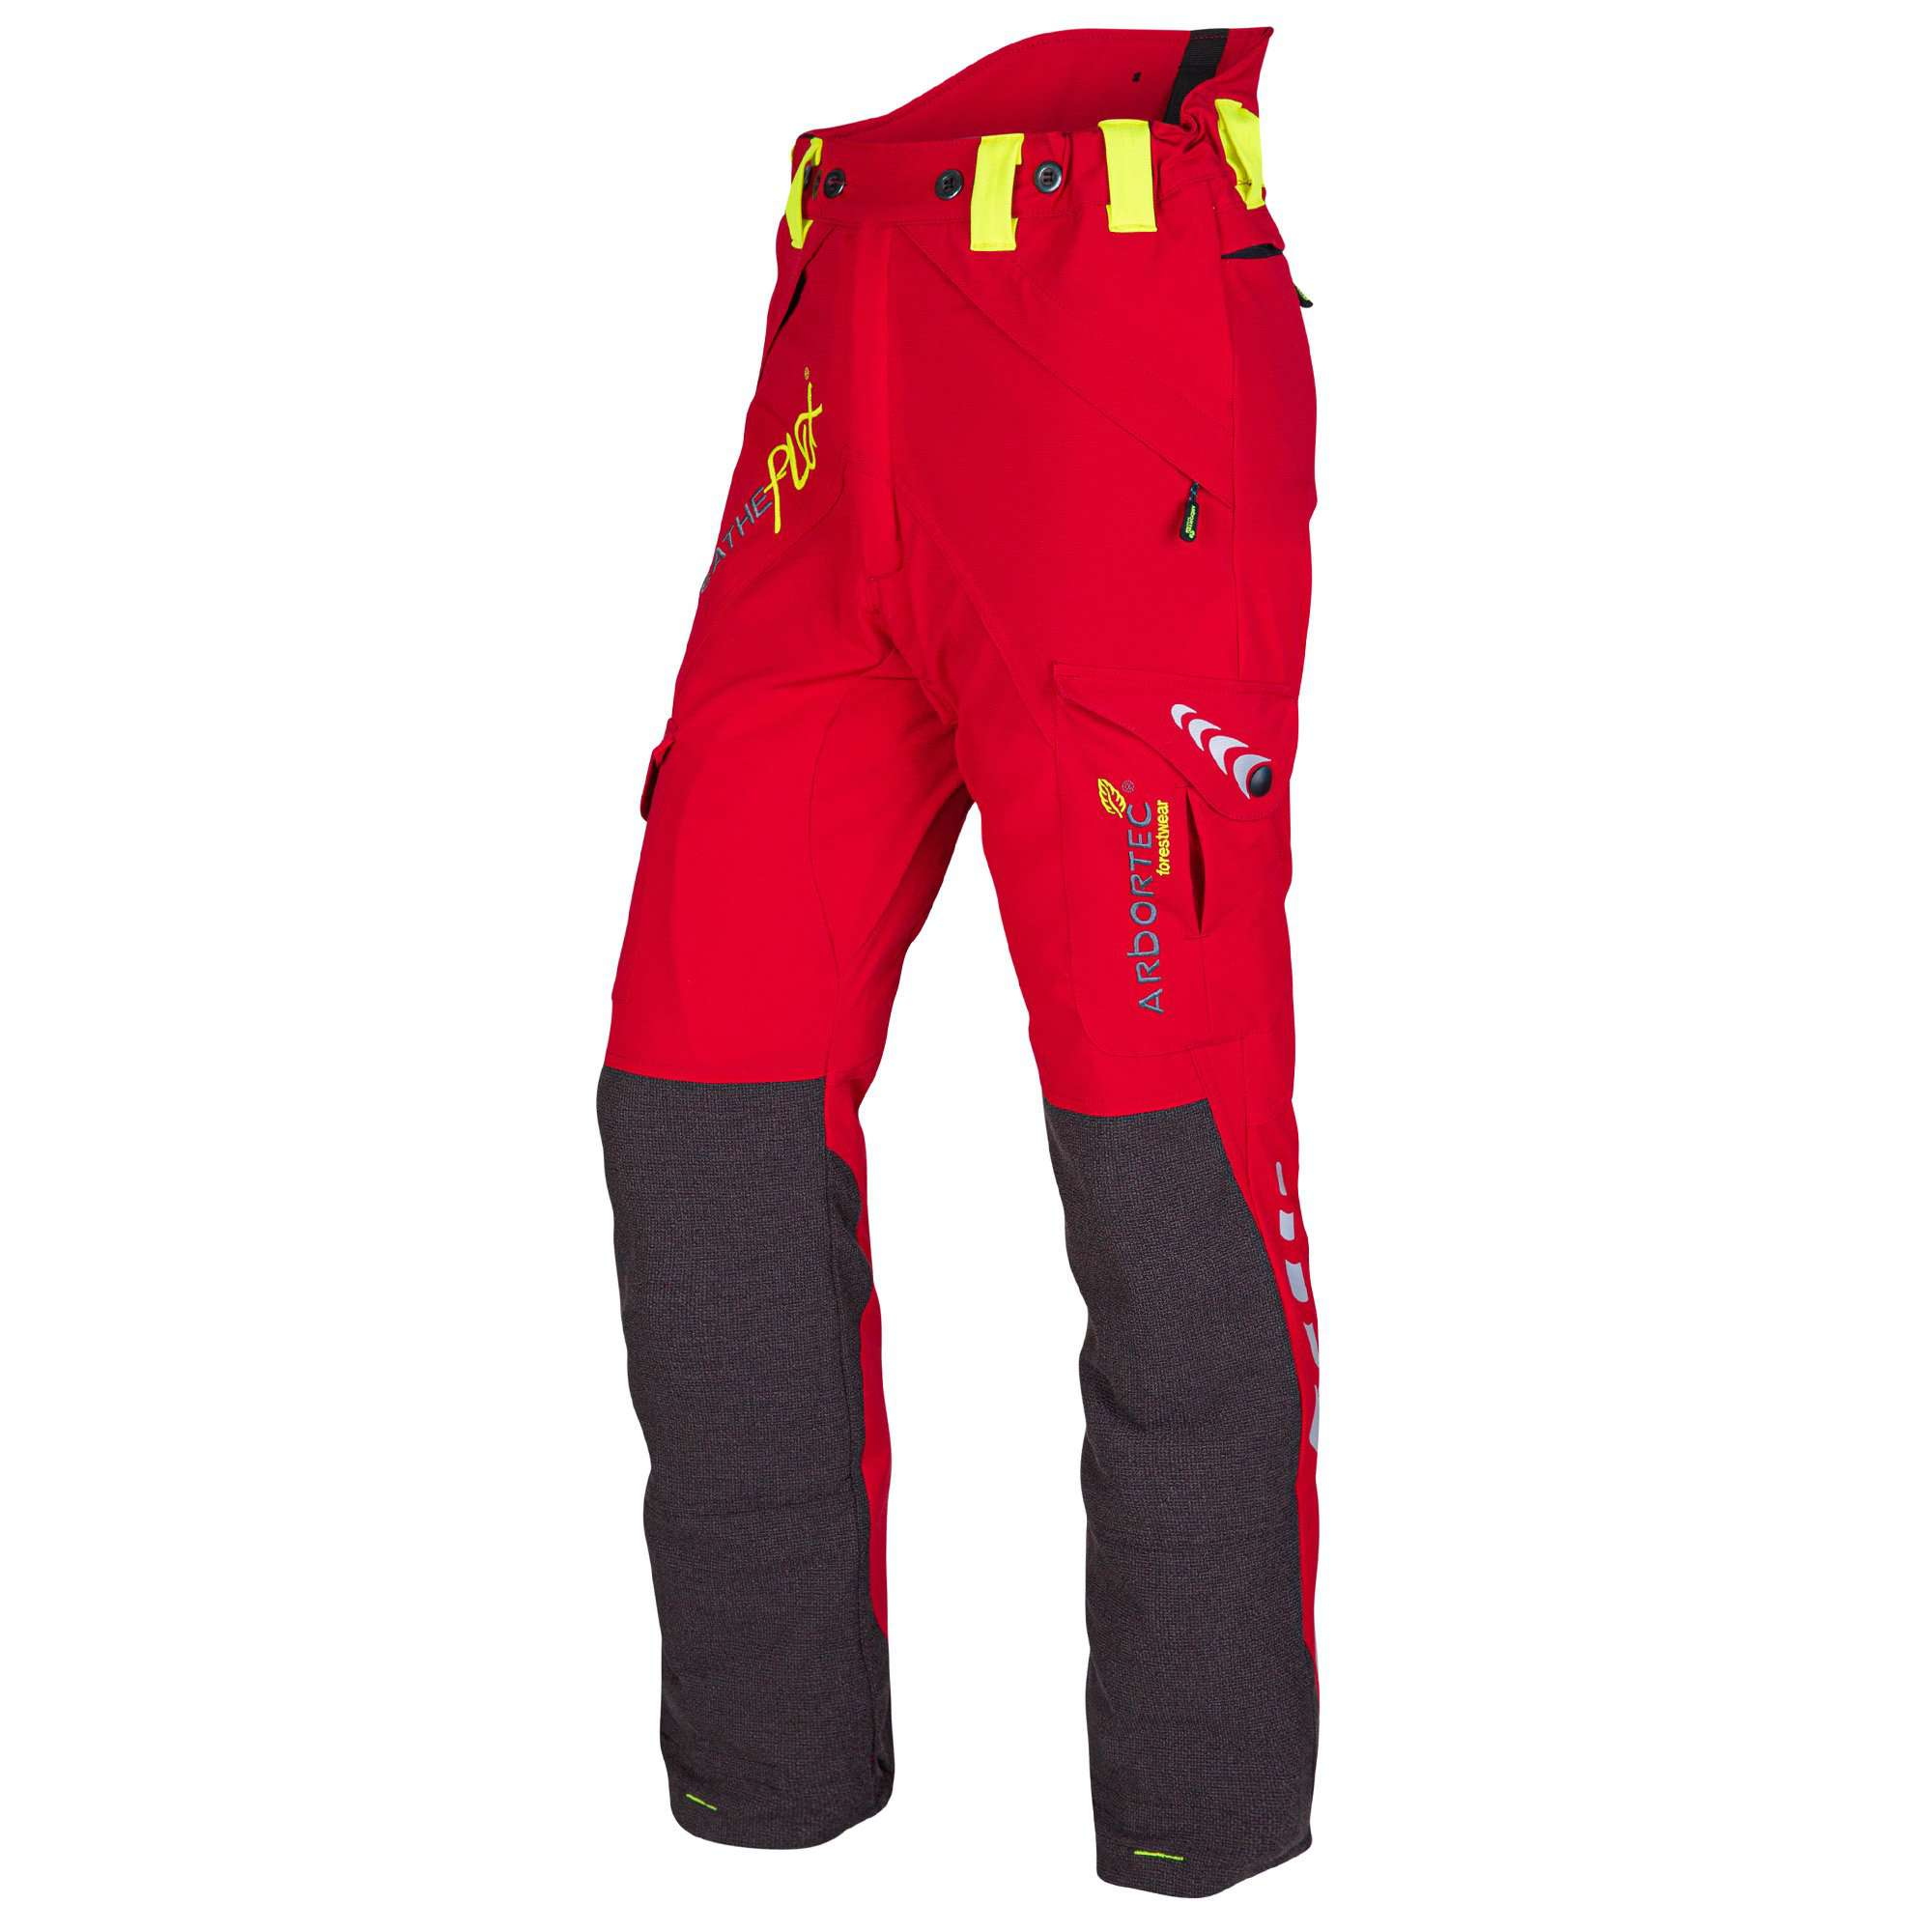 AT4010 Breatheflex Type A Class 1 Chainsaw Trousers - Red - Arbortec Forestwear